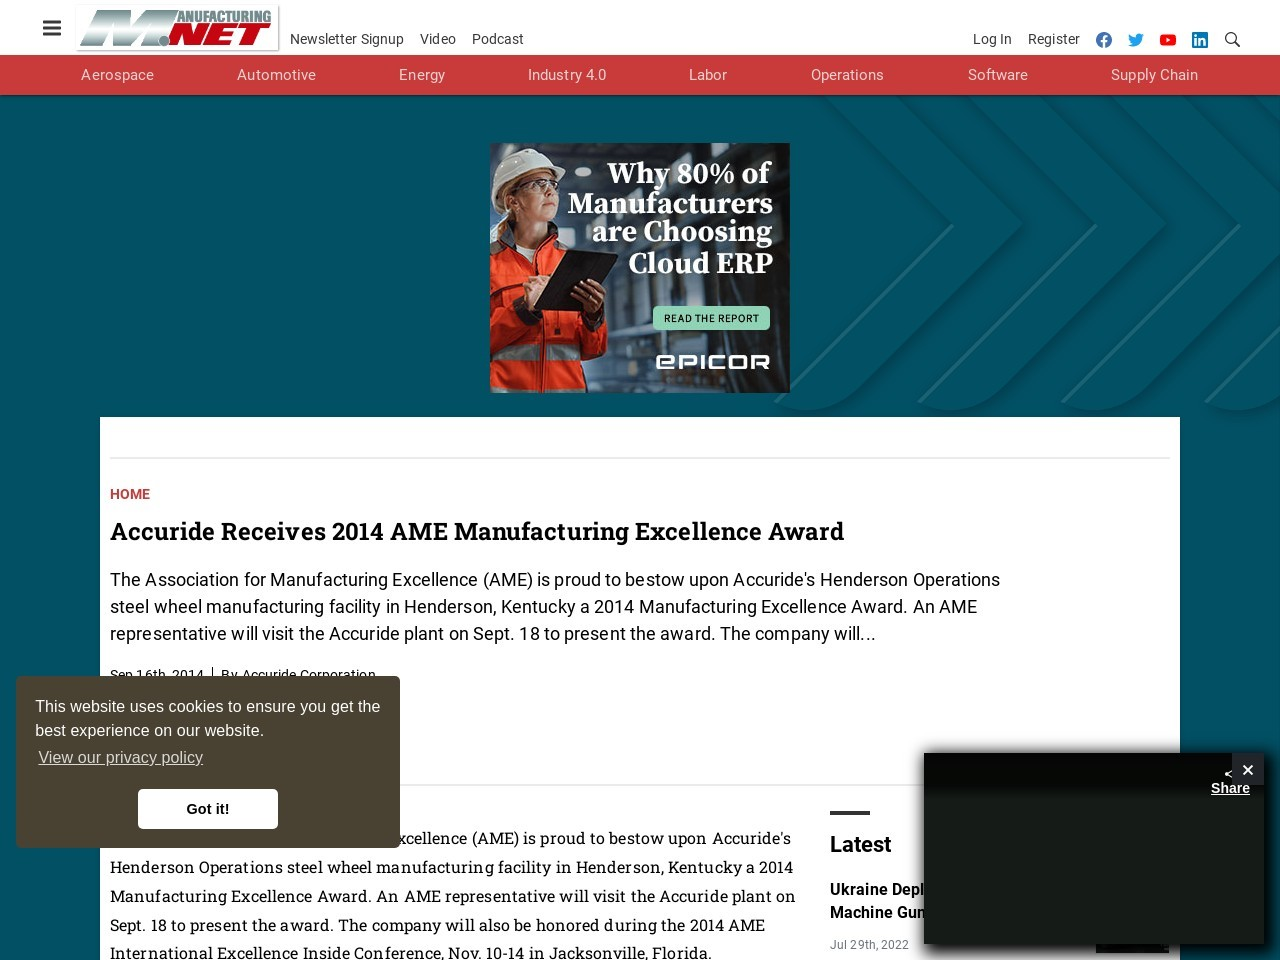 Accuride Receives 2014 AME Manufacturing Excellence Award